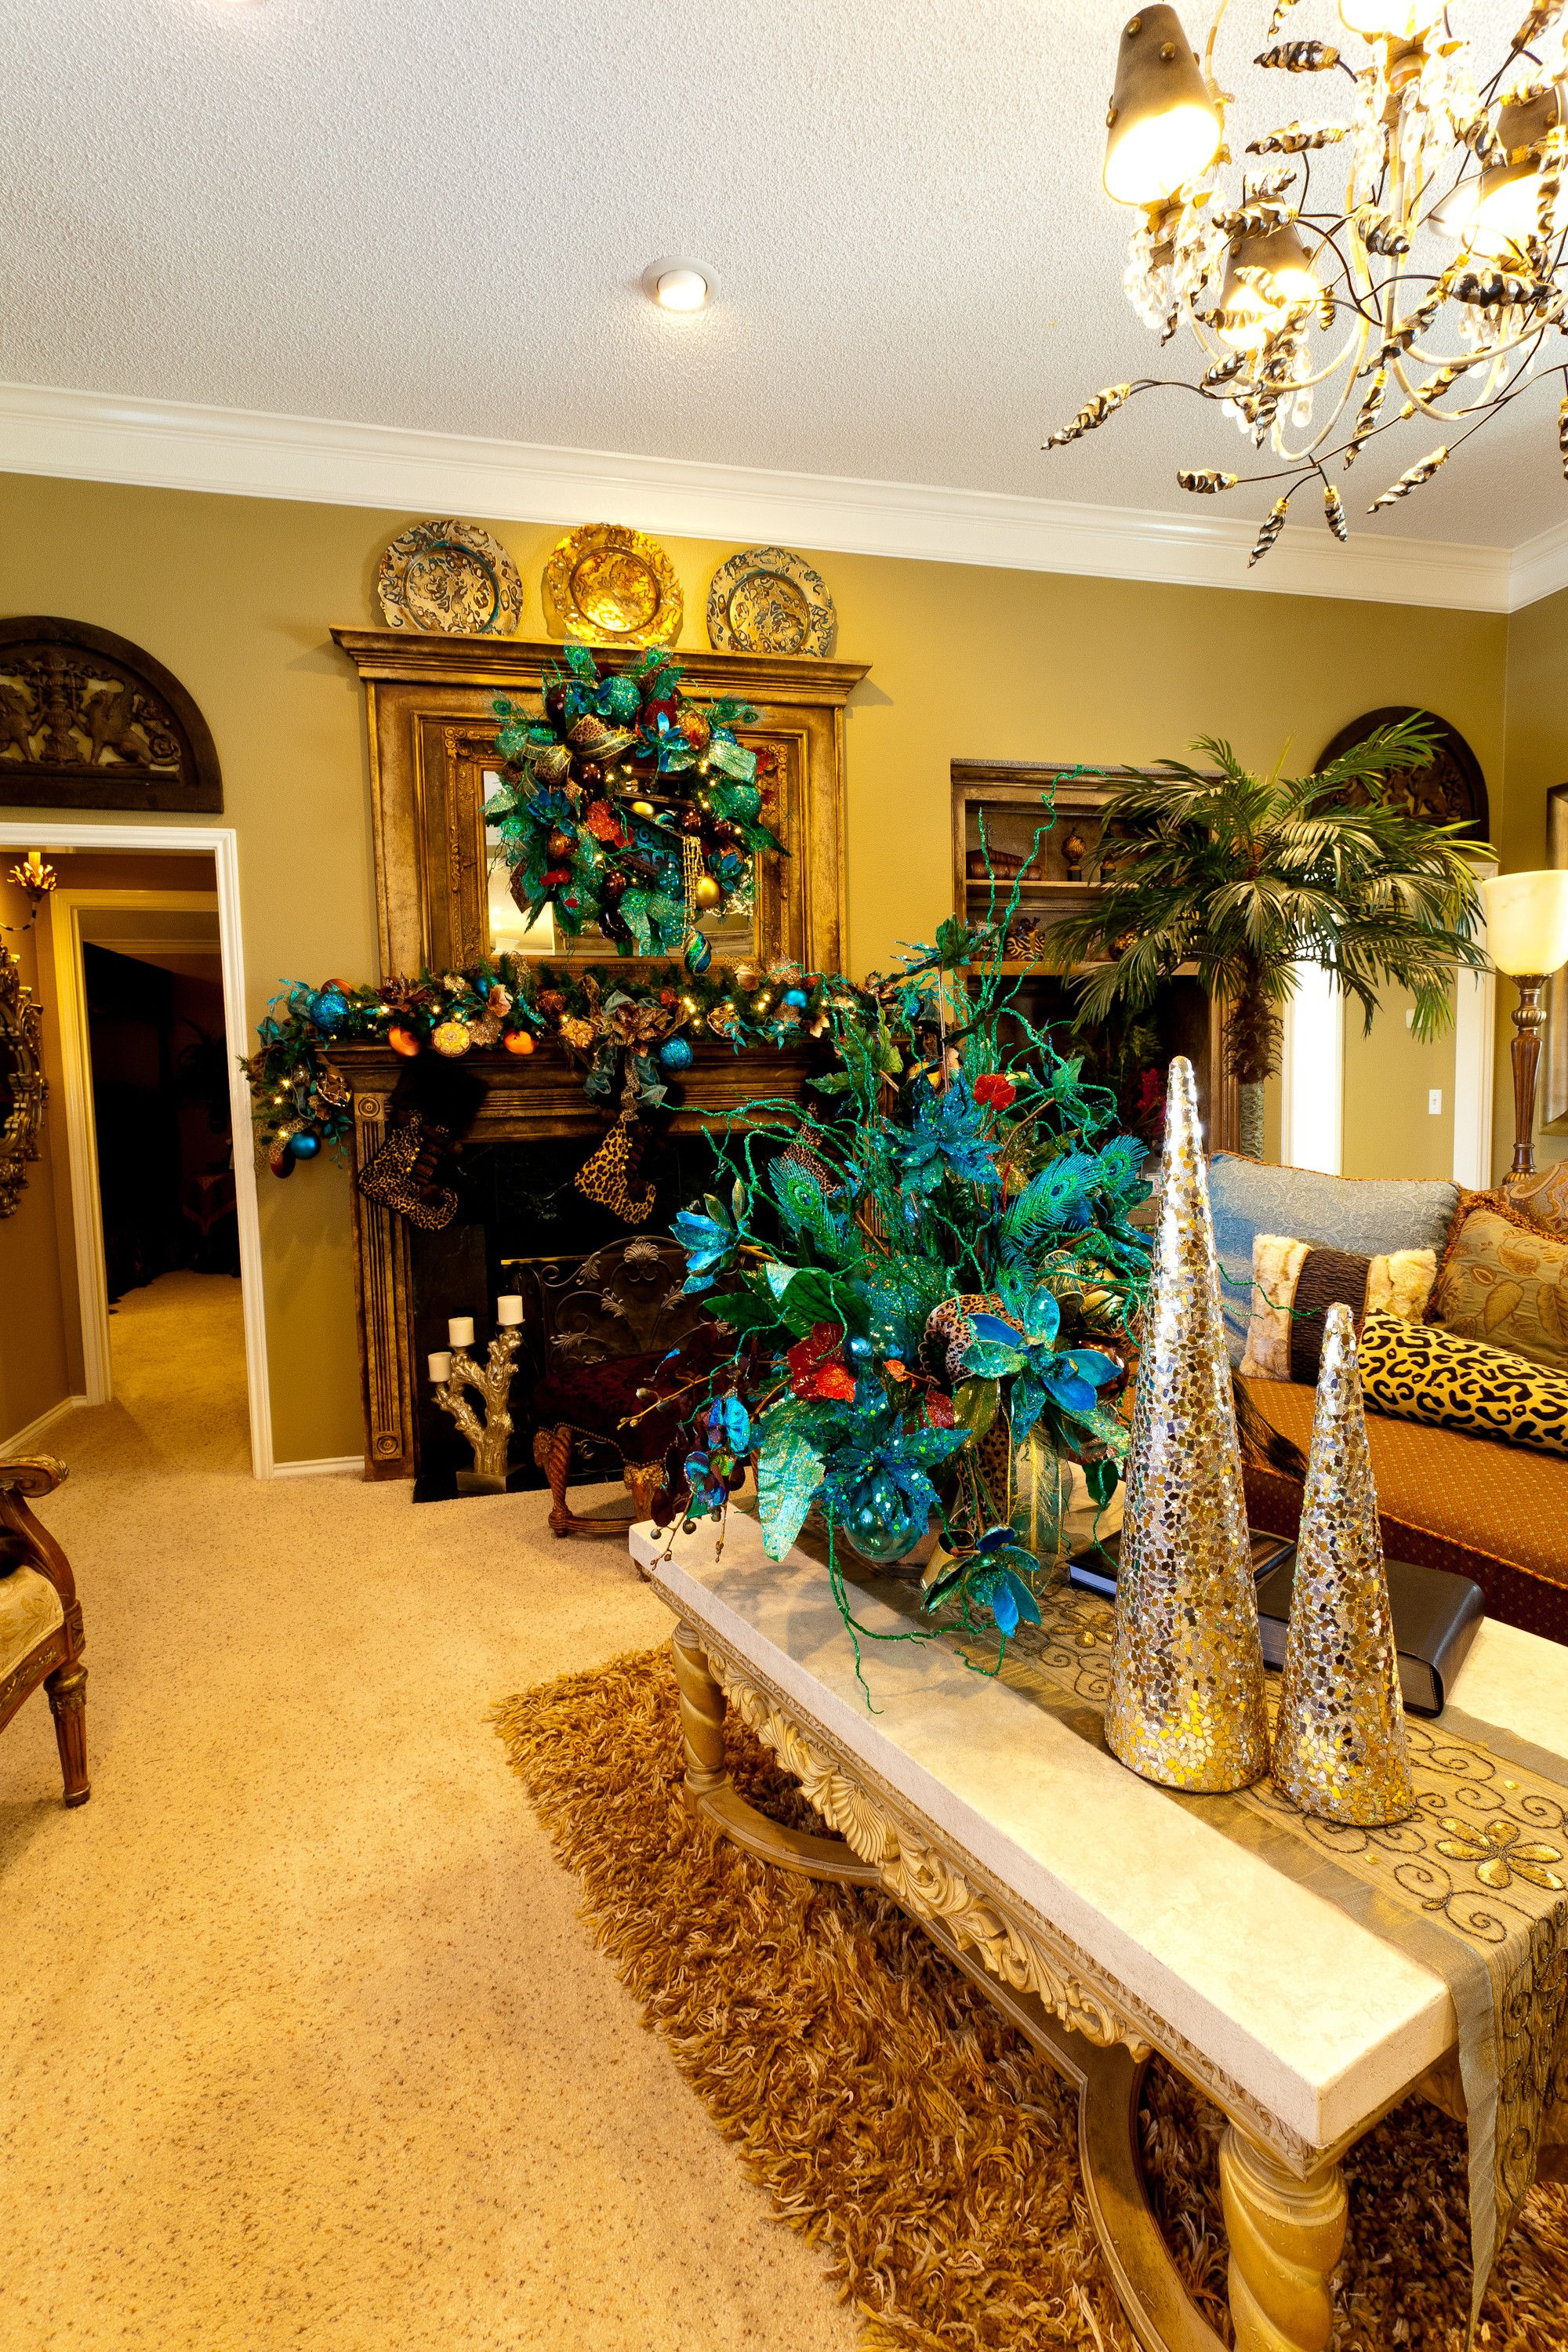 35 Awesome Peacock Decor For Living Room Peacock Decor Living Room Decor Living Room Decor Country #peacock #living #room #ideas